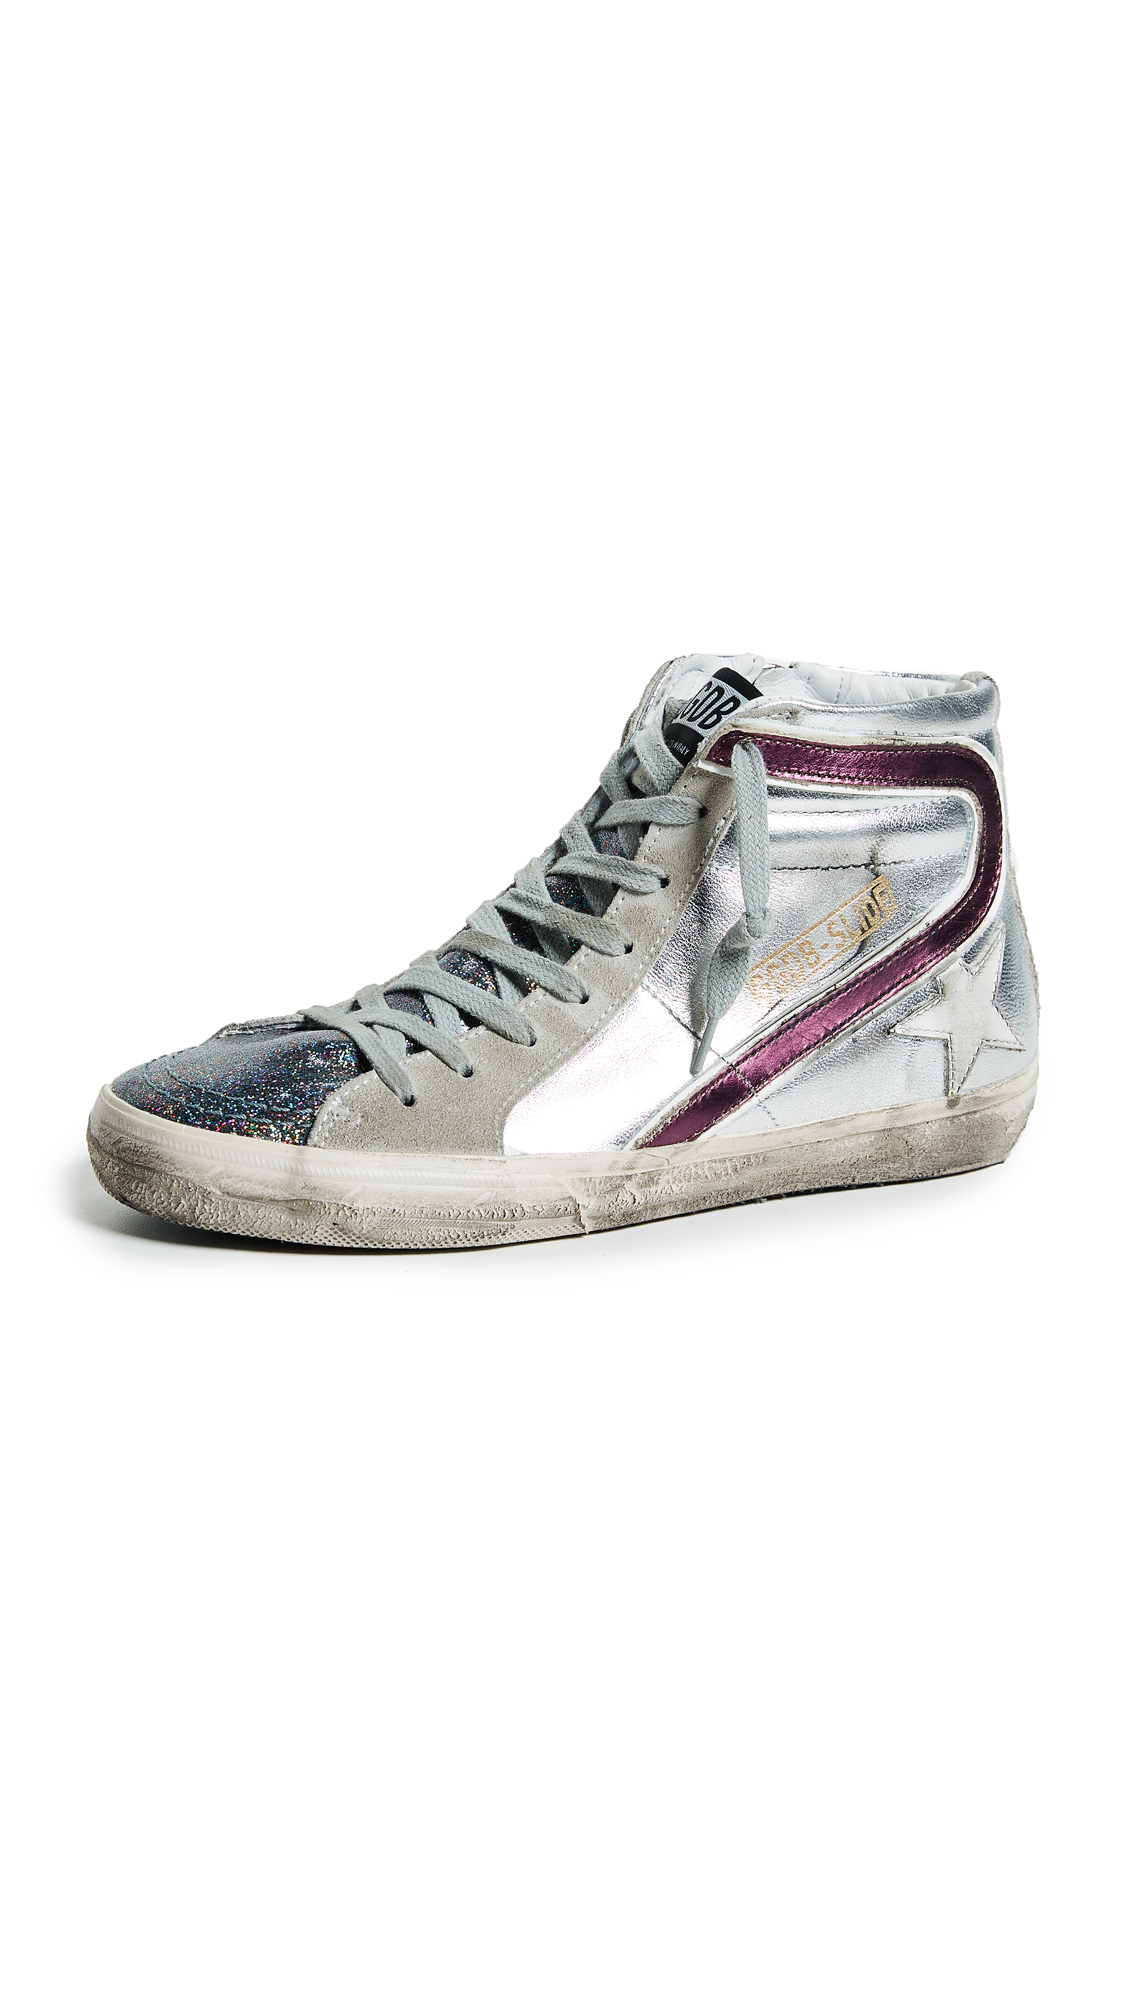 Golden Goose Slide Sneakers - Silver/Glitter